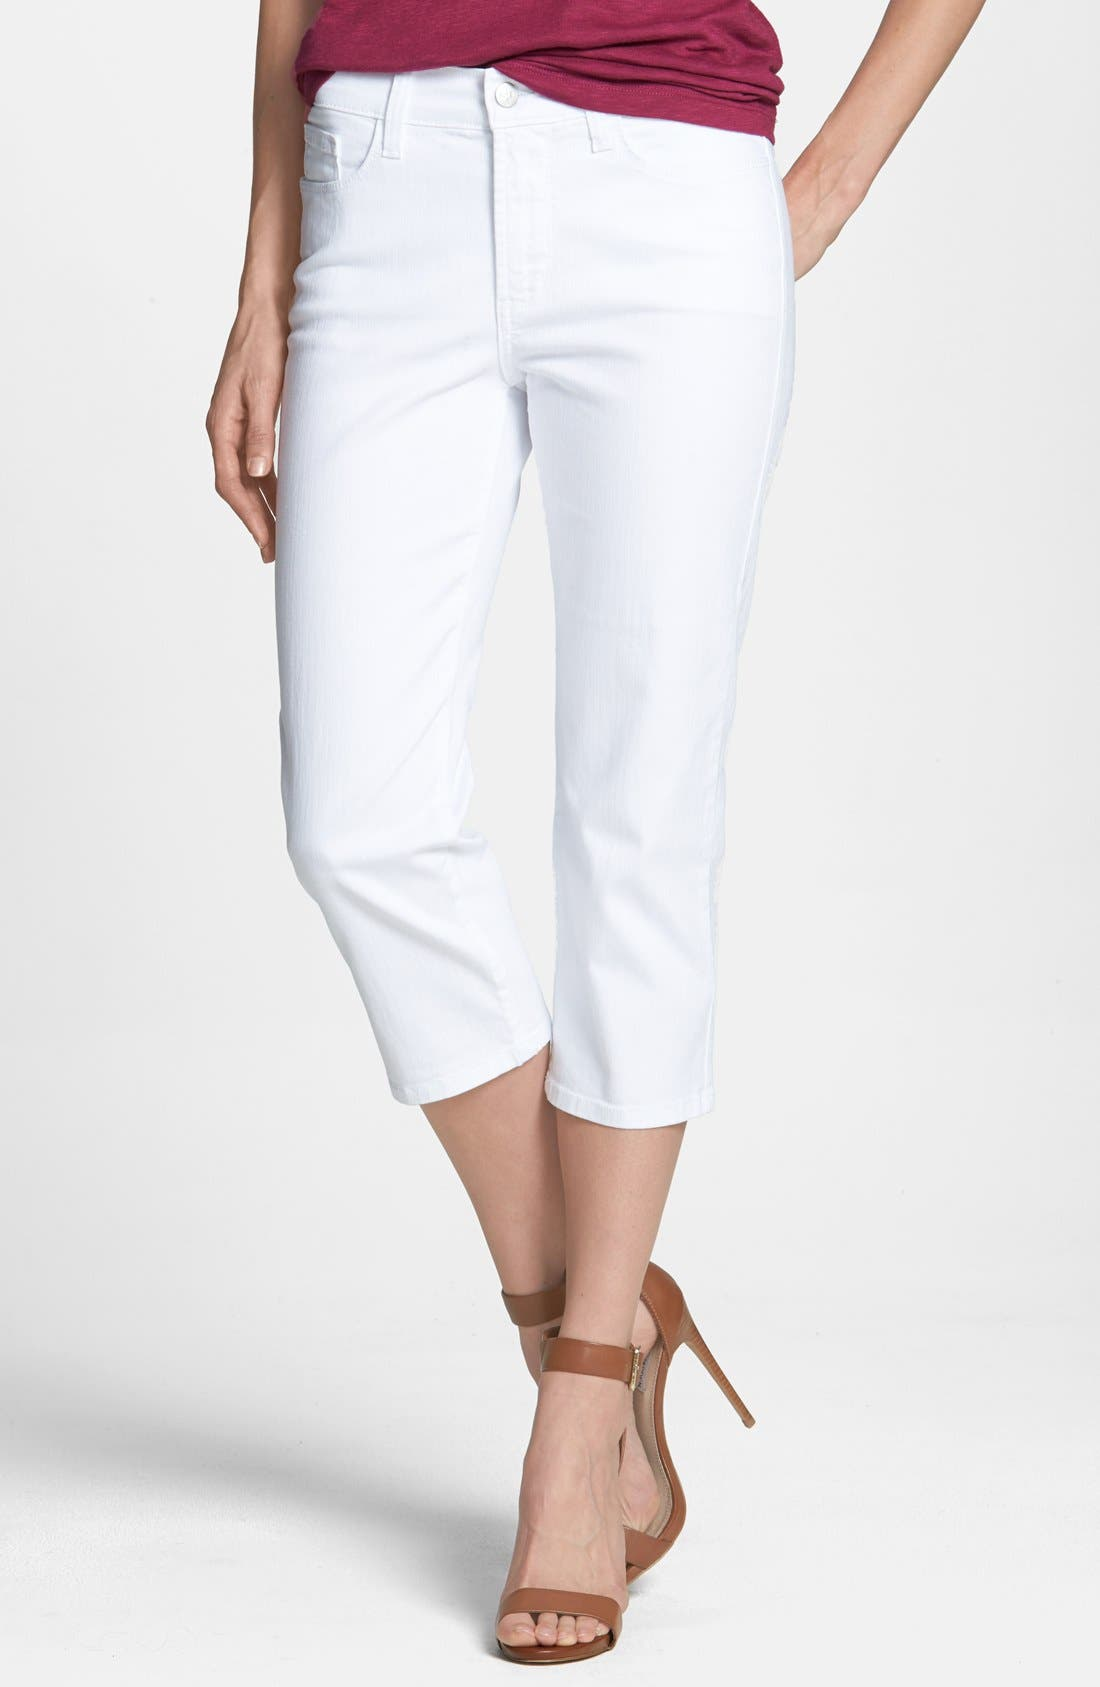 Alternate Image 1 Selected - NYDJ 'Ariel' Embroidered Pocket Stretch Crop Jeans (Optic White) (Petite)